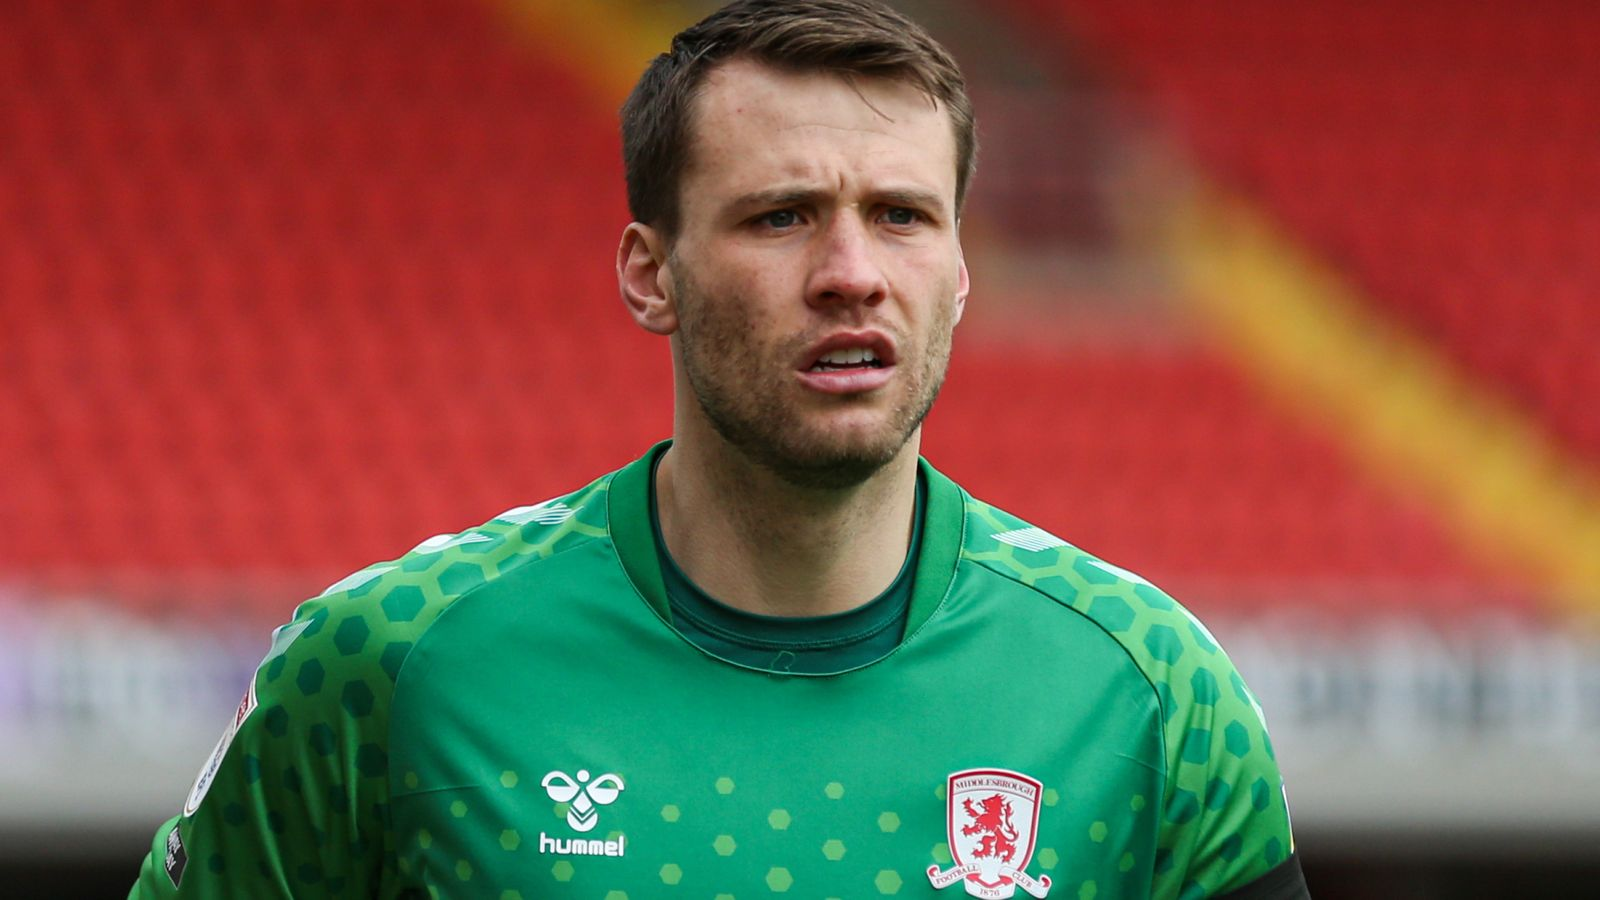 Chelsea transfer news: Marcus Bettinelli signs two-year deal at Stamford Bridge after Fulham exit